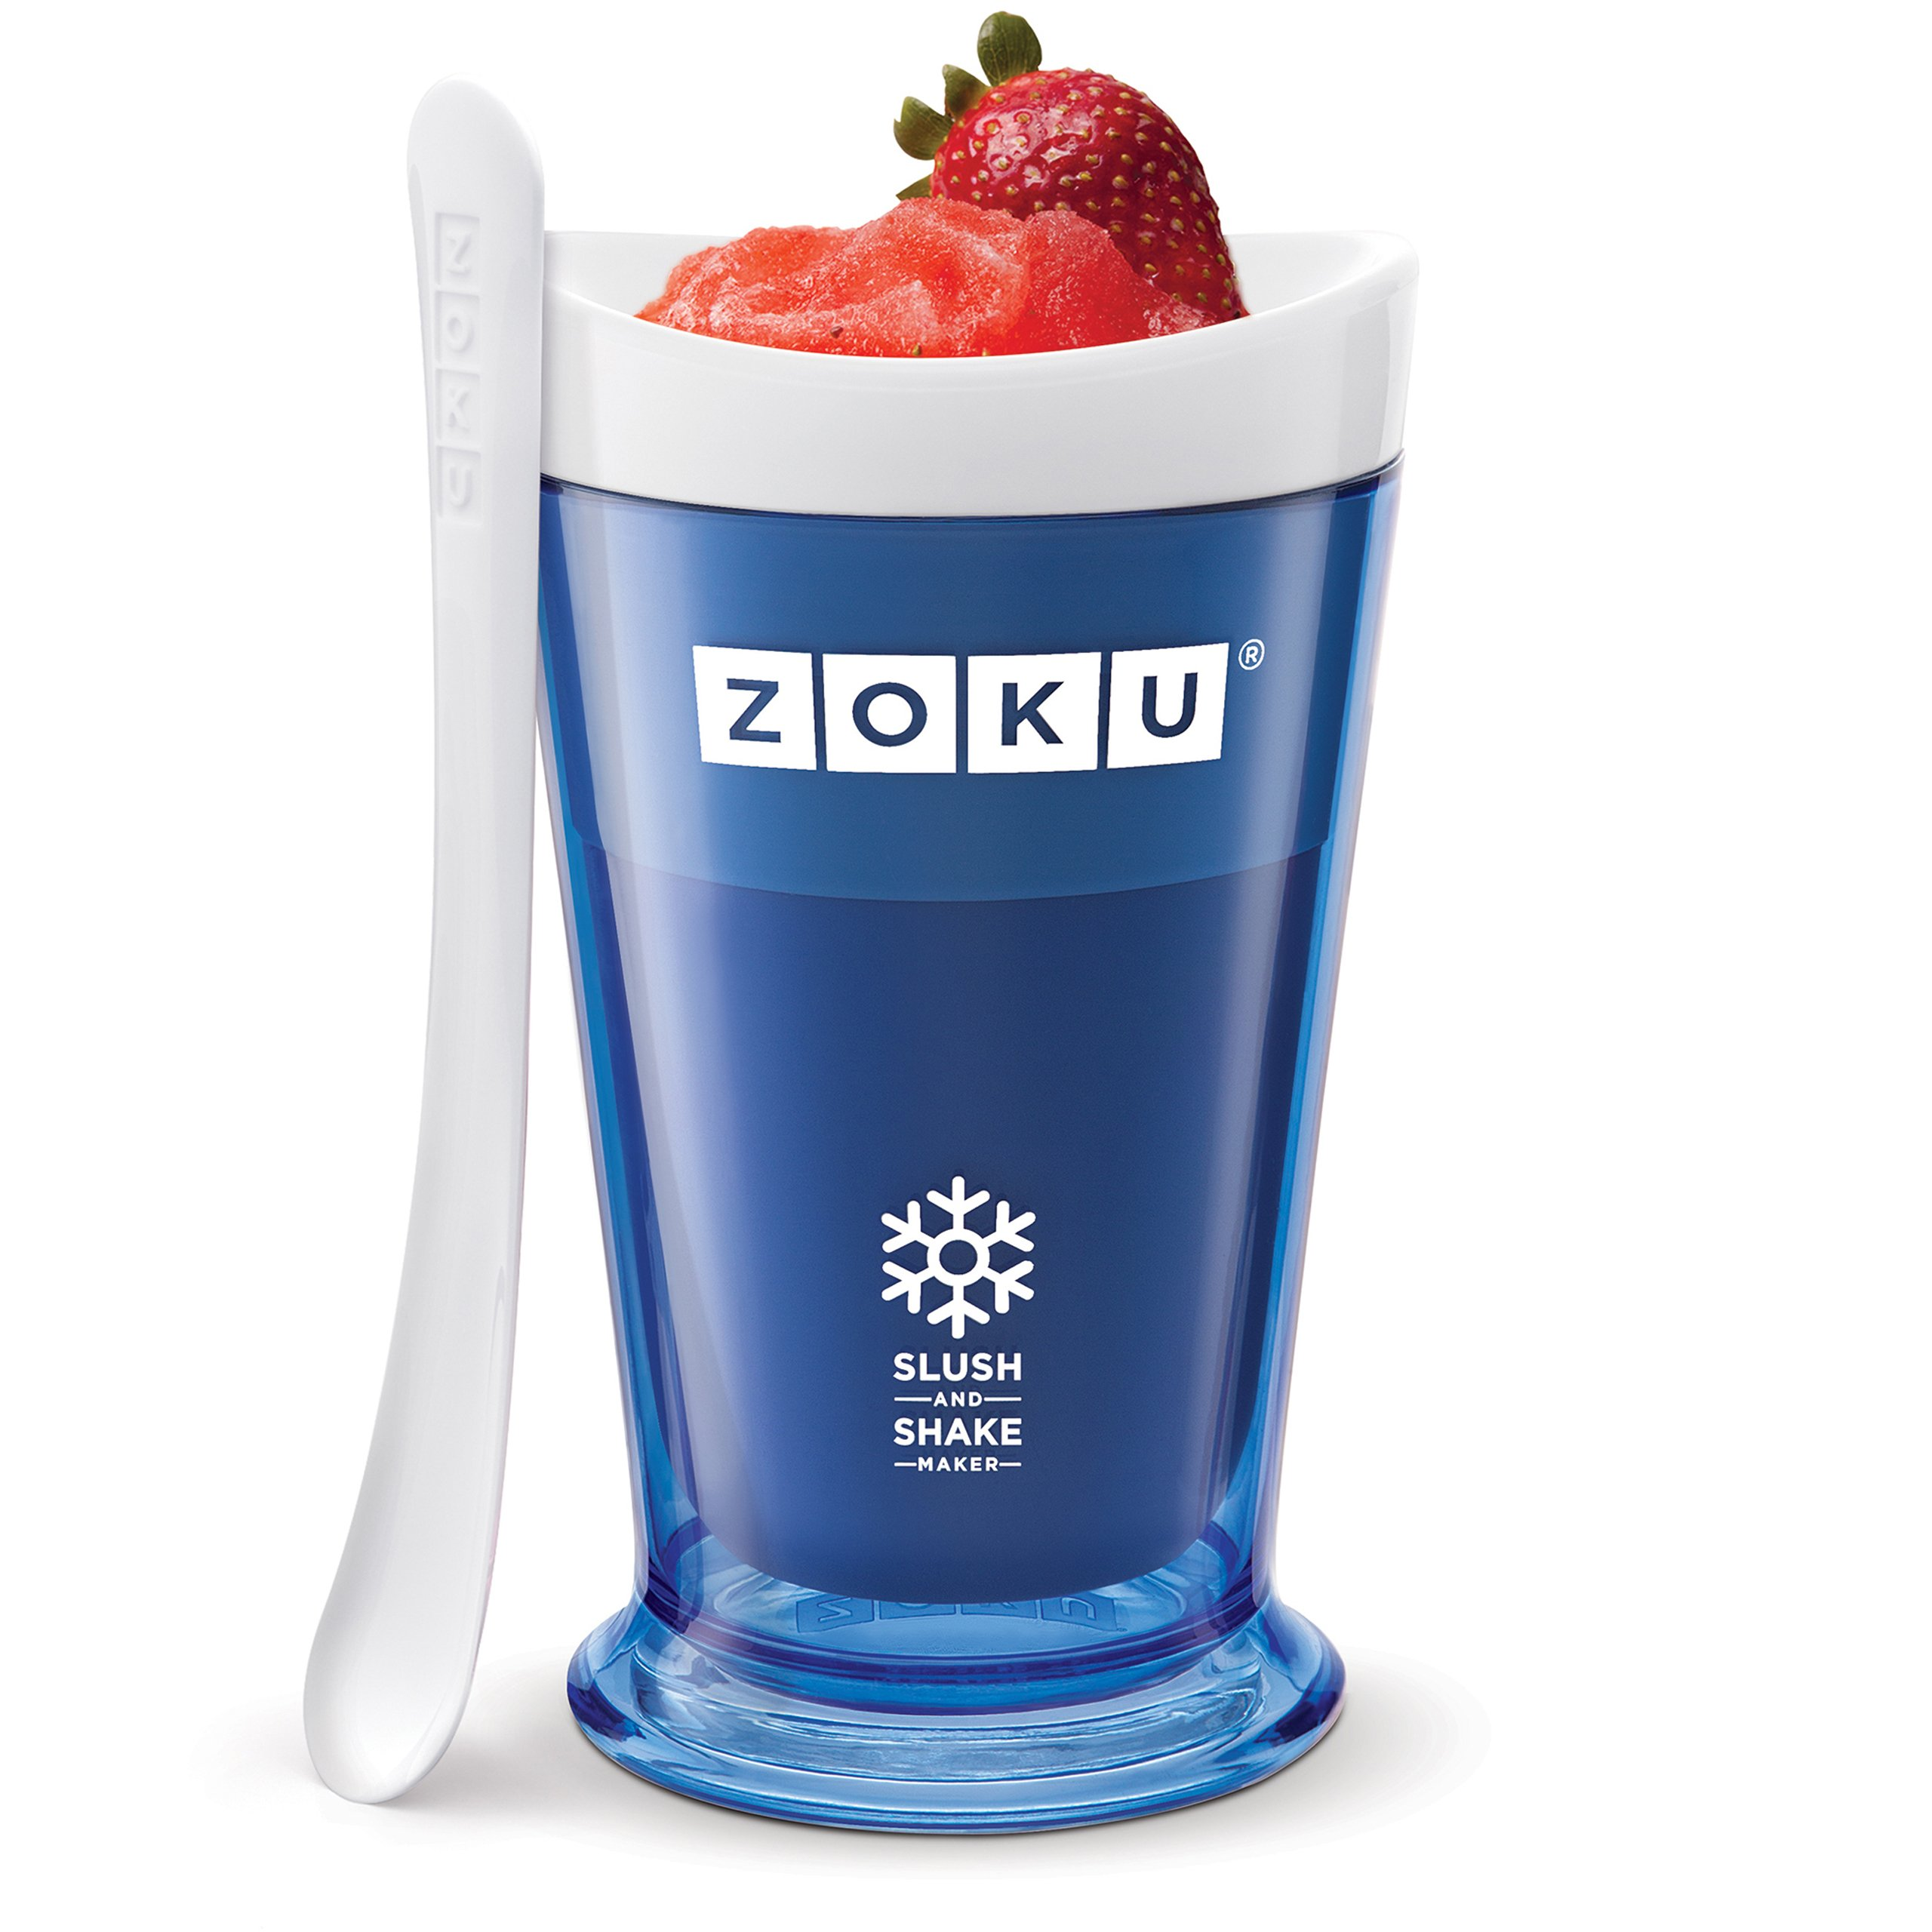 Zoku Slush and Shake Maker, Compact Make and Serve Cup with Freezer Core Creates Single-serving Smoothies, Slushies and Milkshakes in Minutes, BPA-free, Blue by Zoku